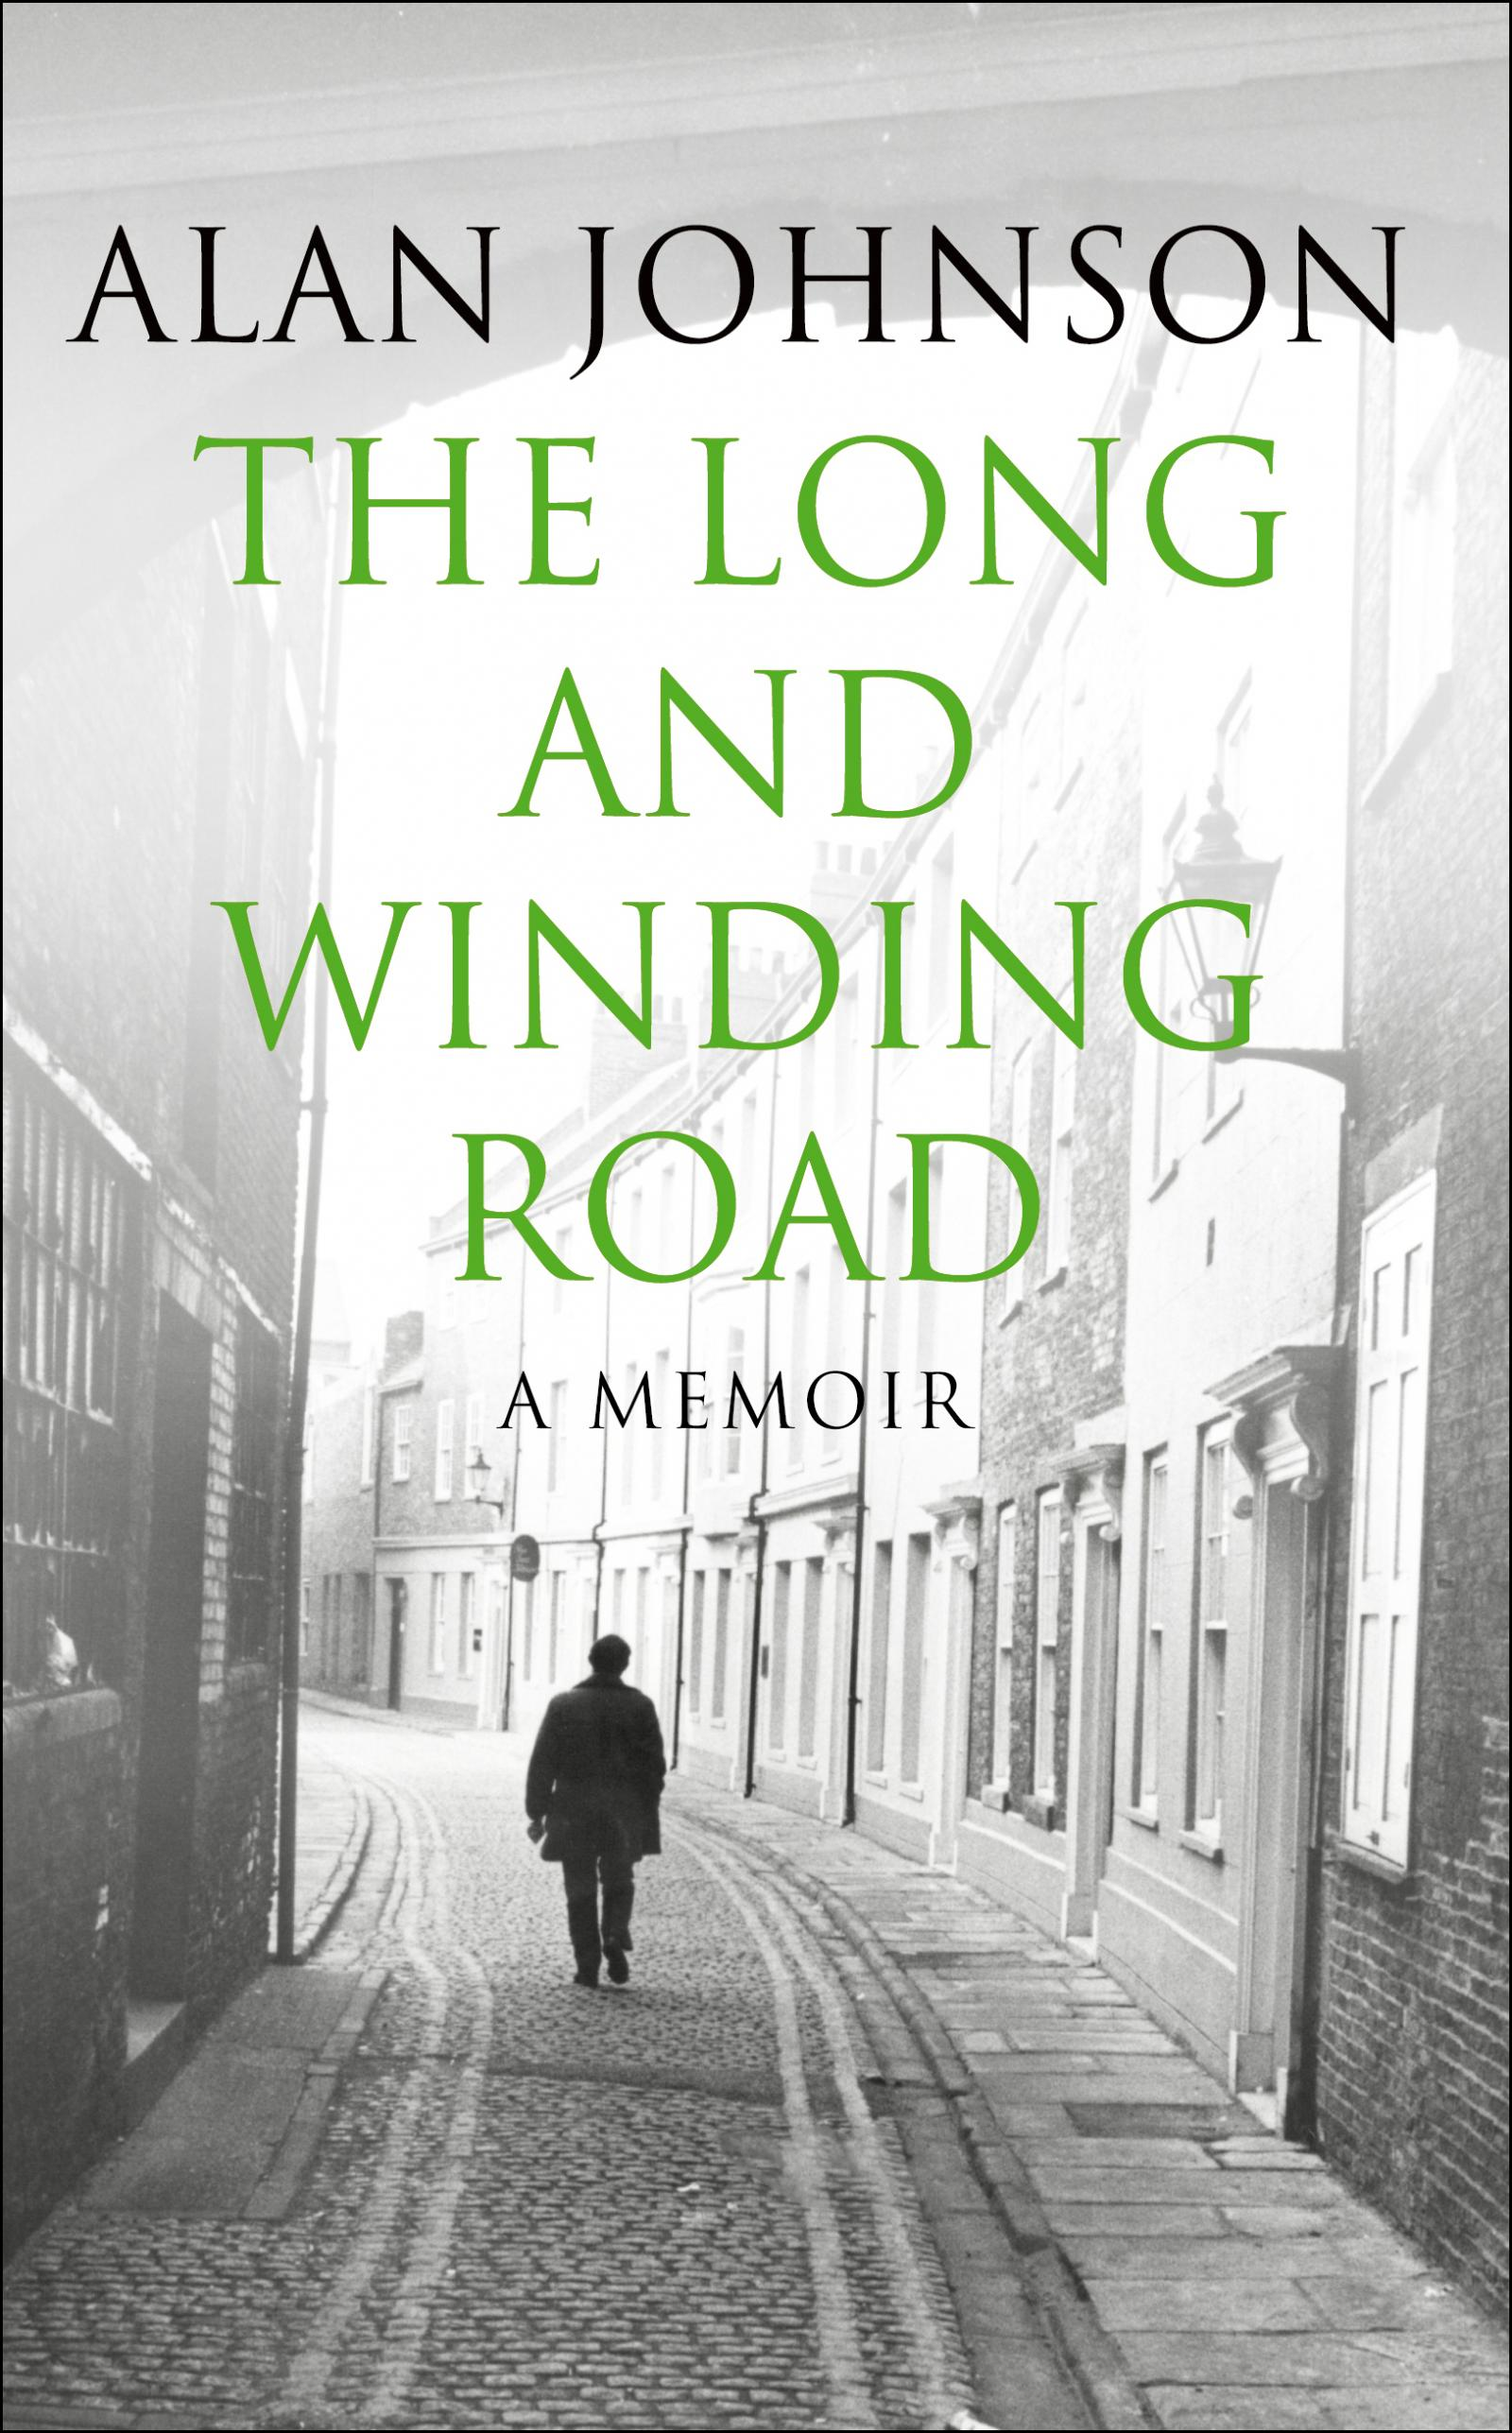 alan-johnson-book-jacket-the-long-and-winding-road